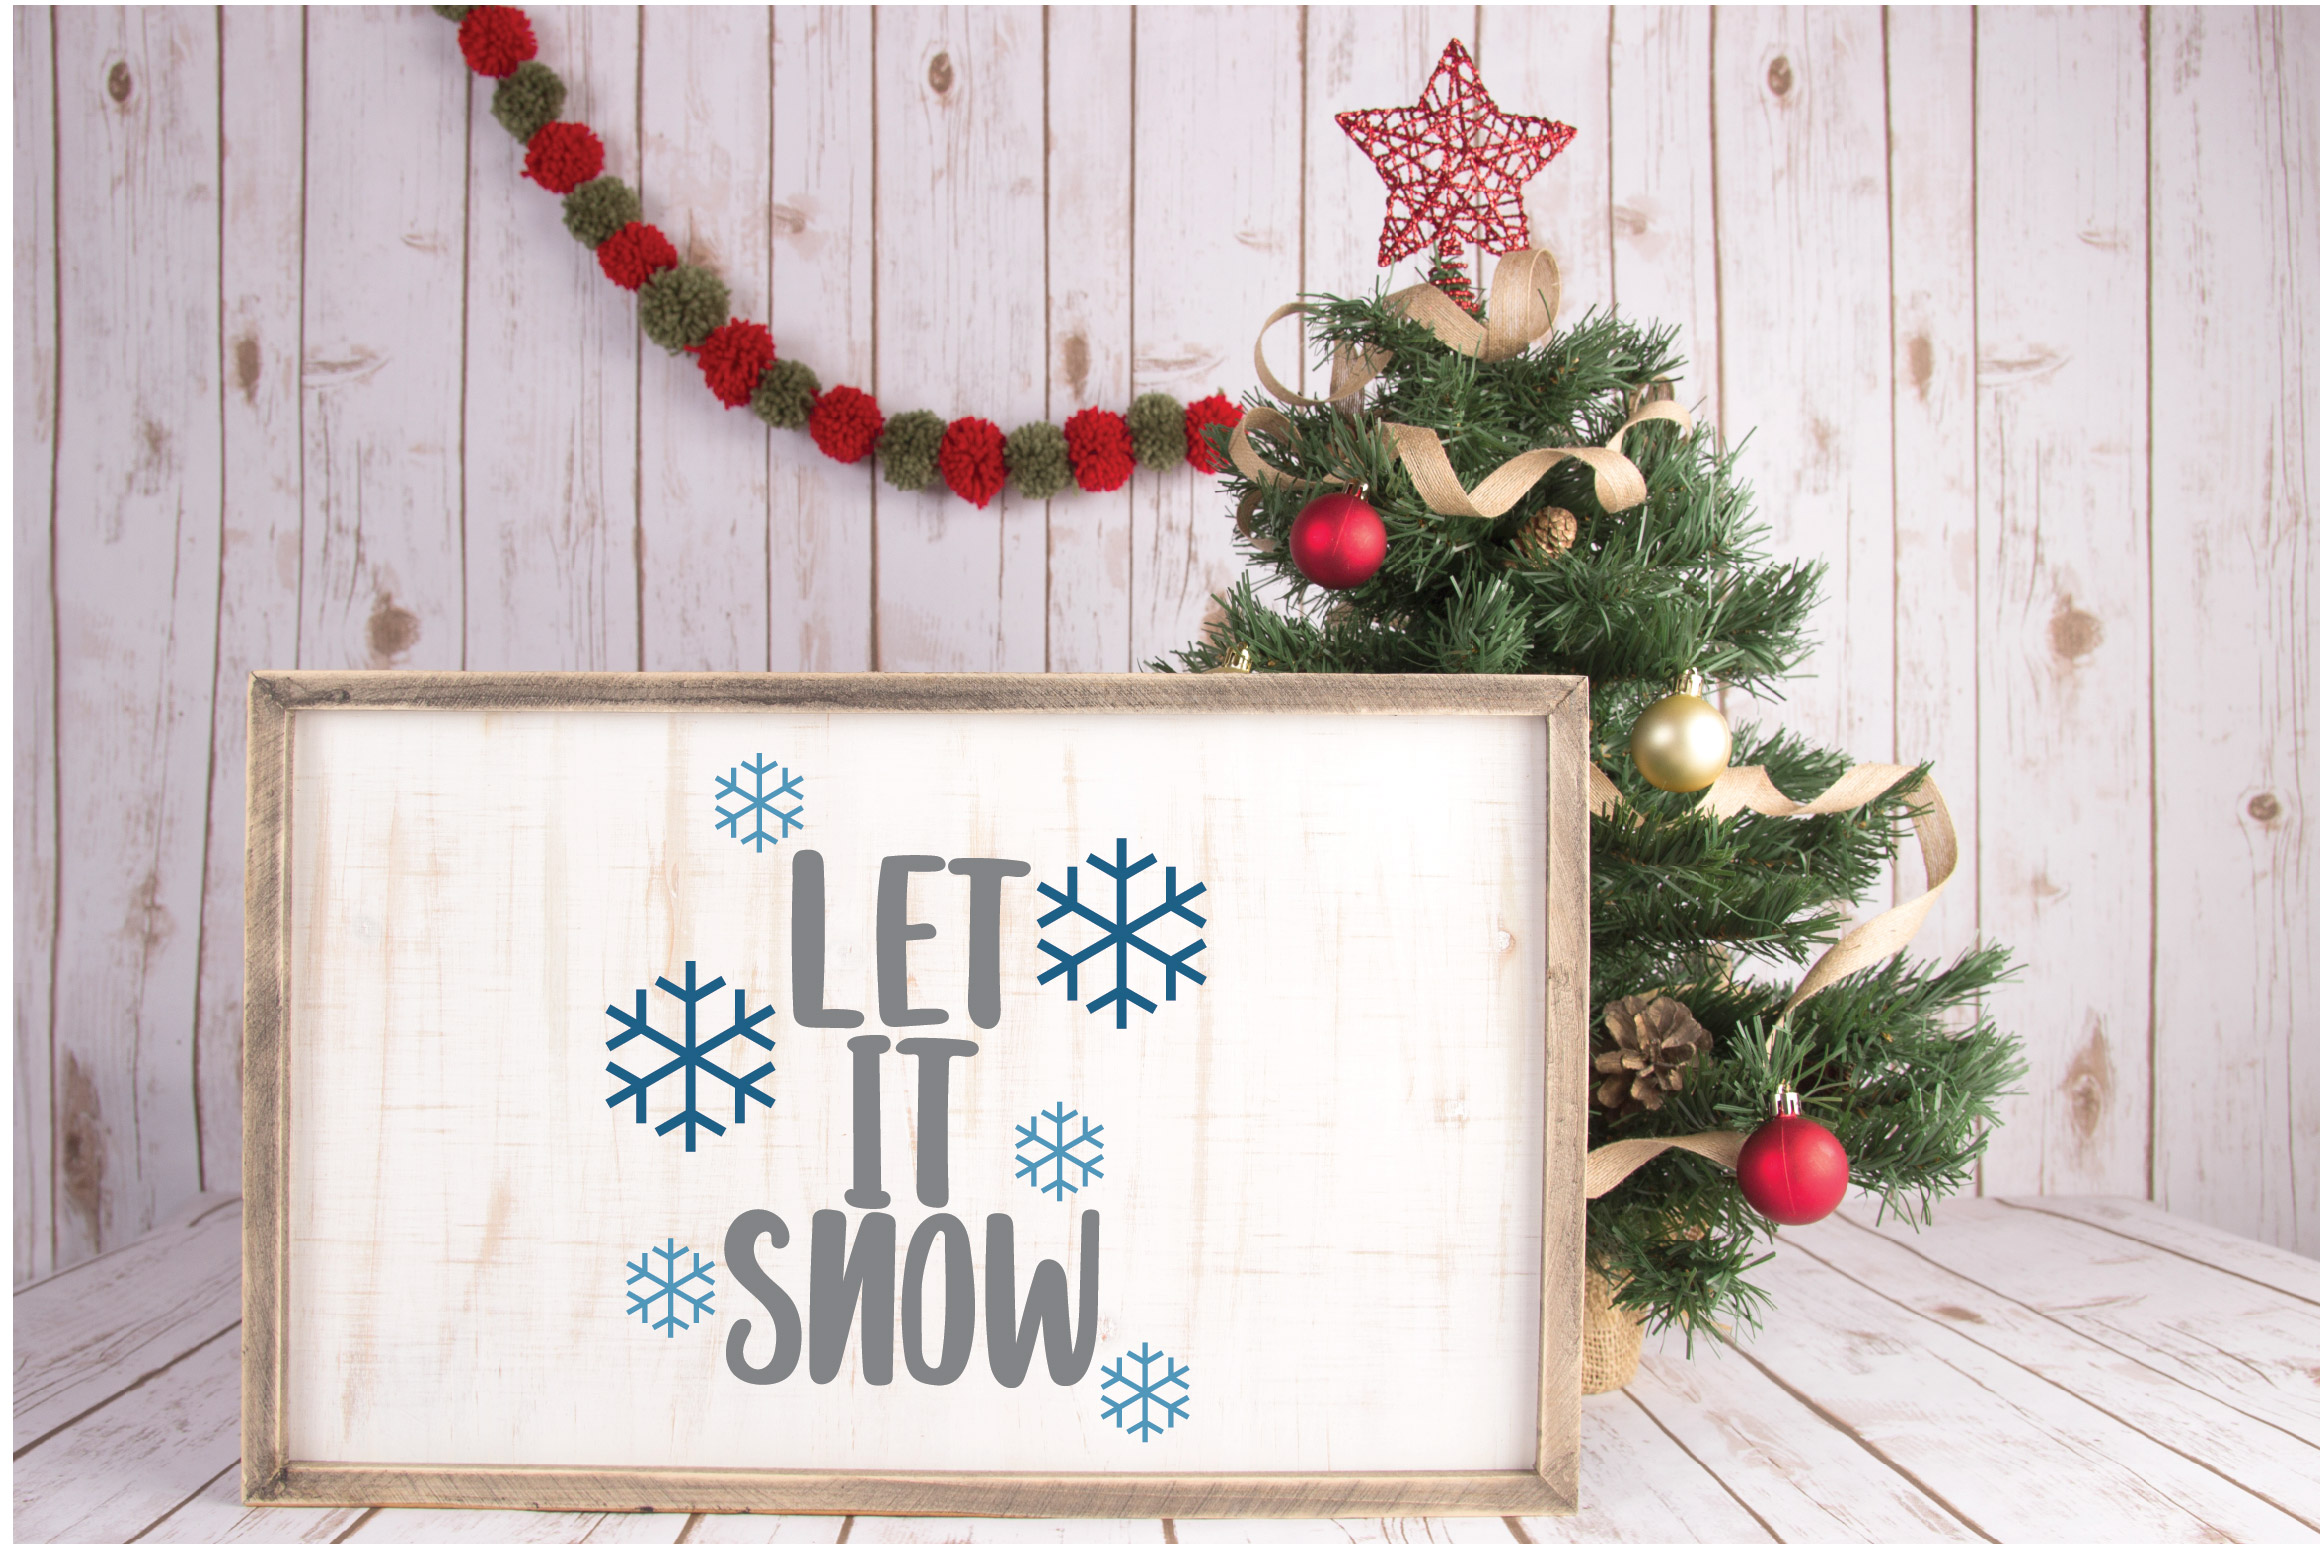 Let it Snow SVG Cut File - Christmas SVG example image 3